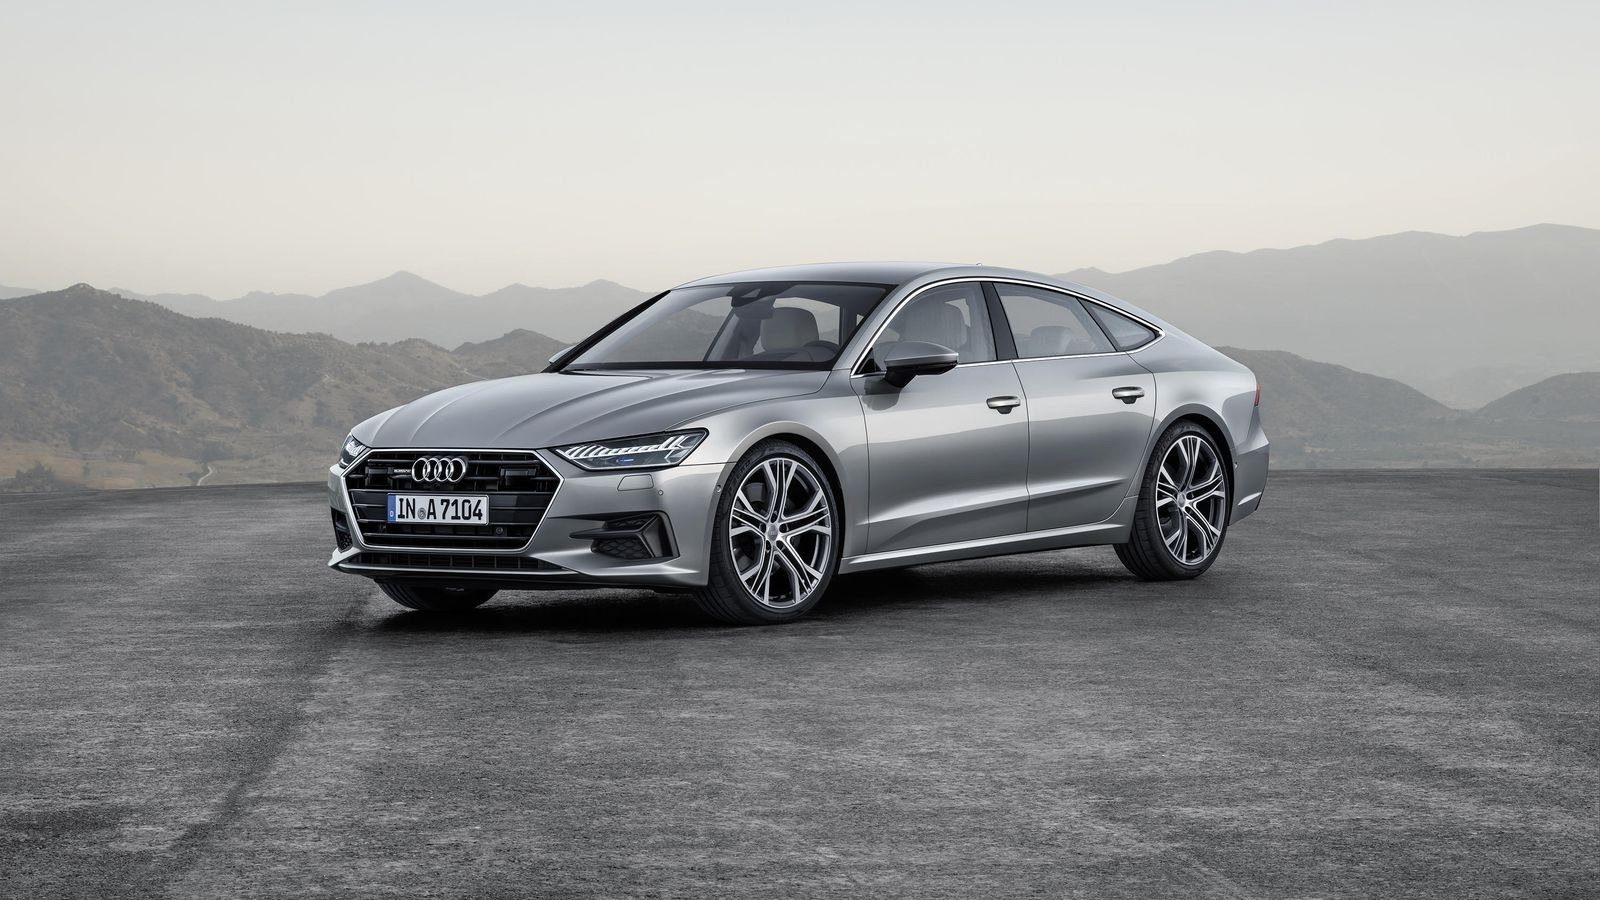 97 The 2020 Audi A7 Release Date and Concept